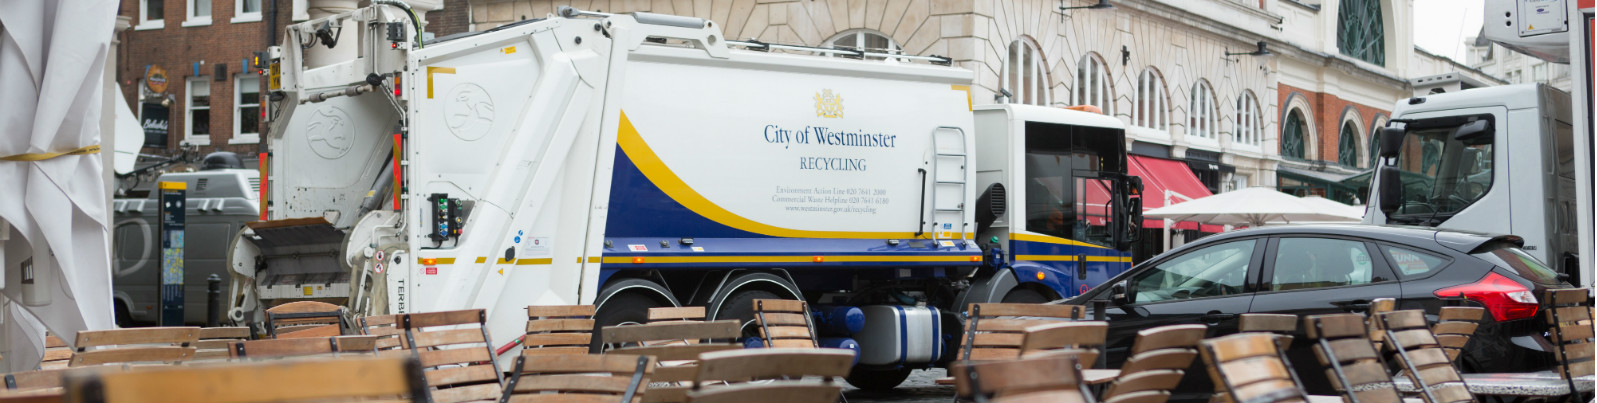 westminster food waste recycling services